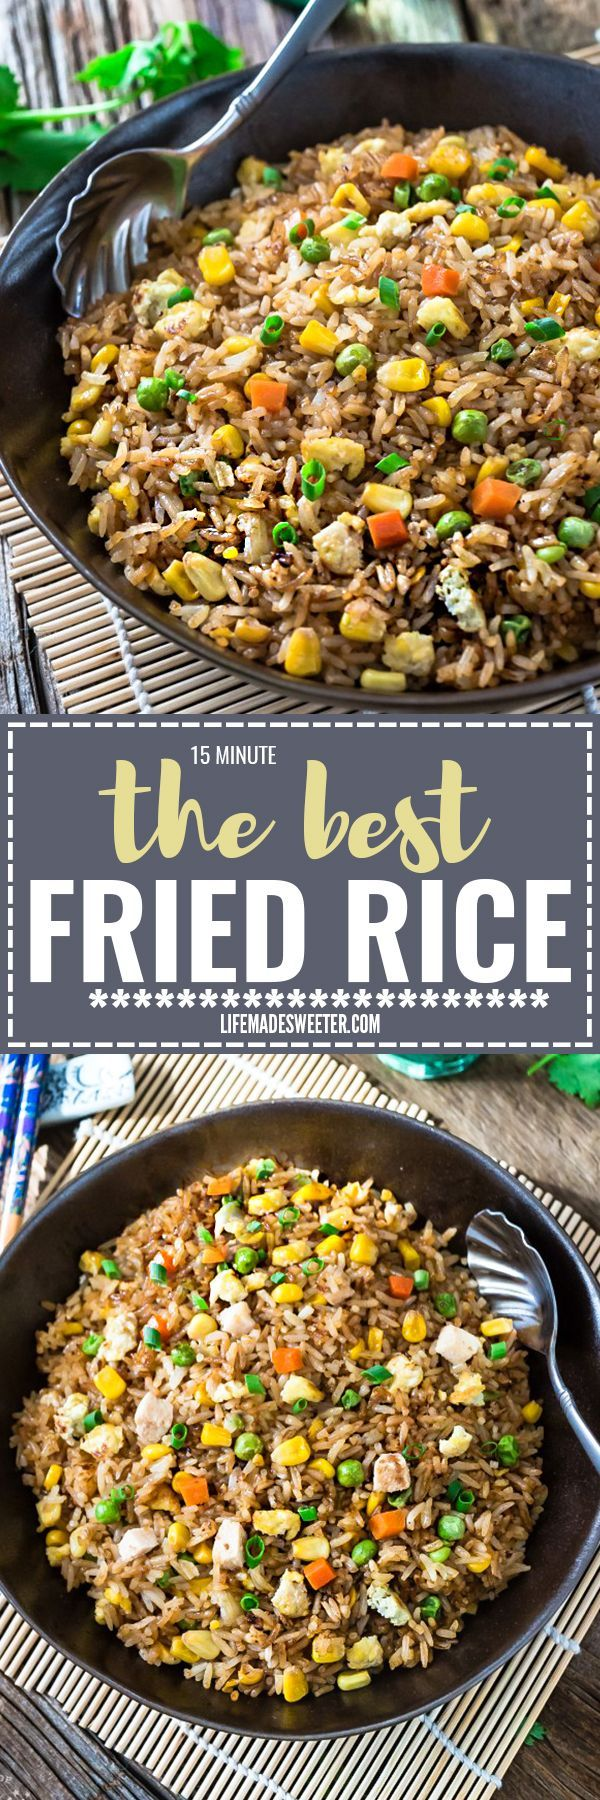 Absolutely the BEST Chinese Fried Rice - the perfect easy weeknight dish. With the most authentic flavors! My father was the head chef at a top Hong Kong Chinese restaurant and this was his specialty! So delicious and way better than any takeout!: